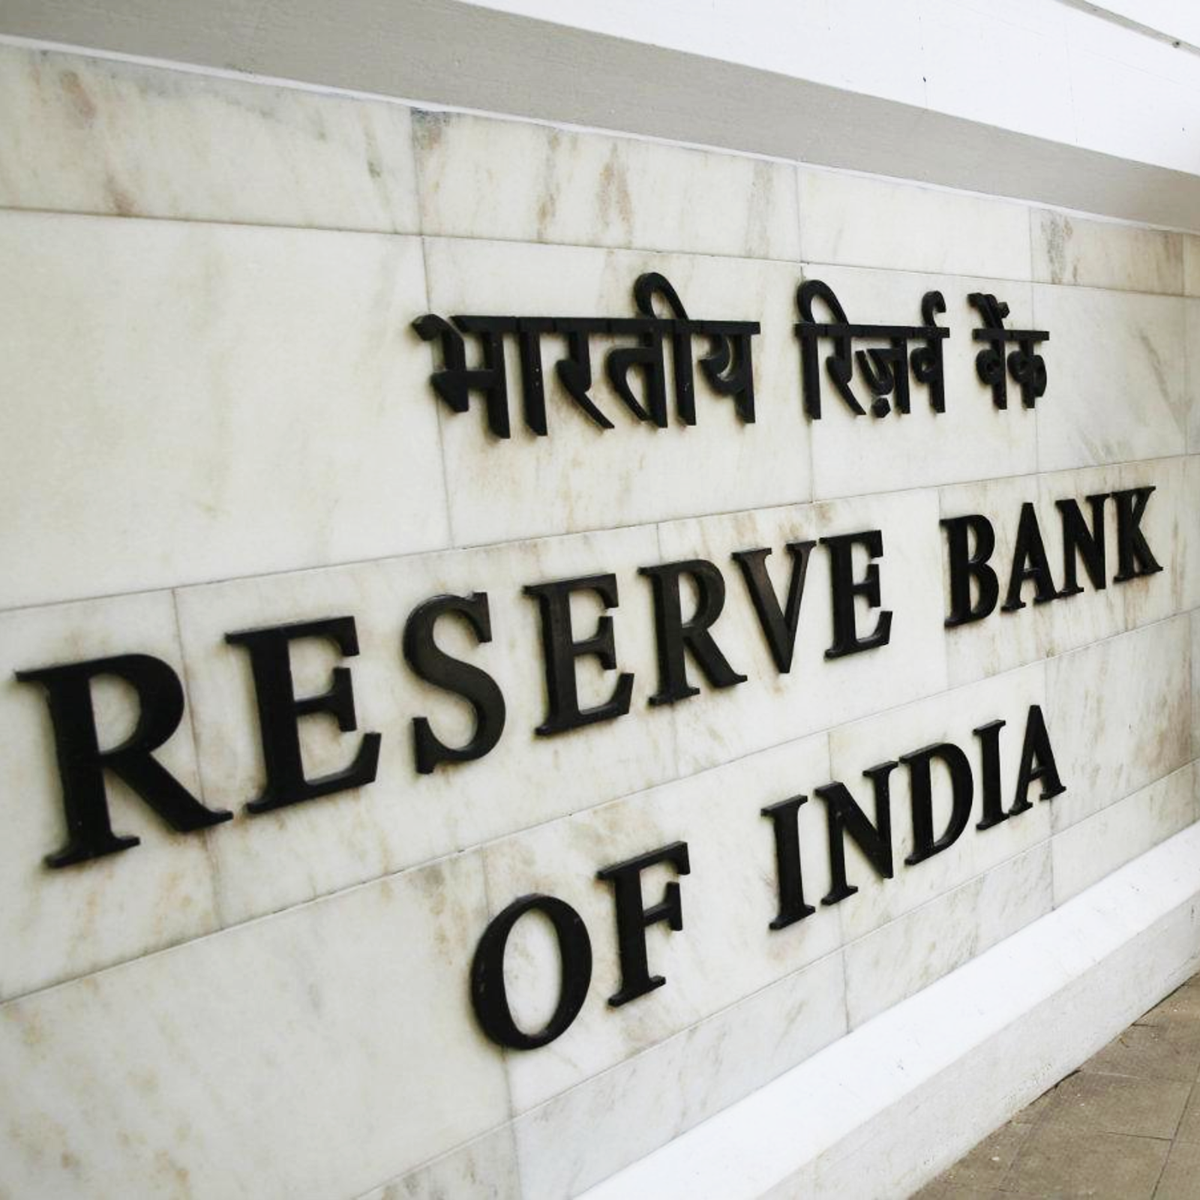 Reserve Bank of India-3